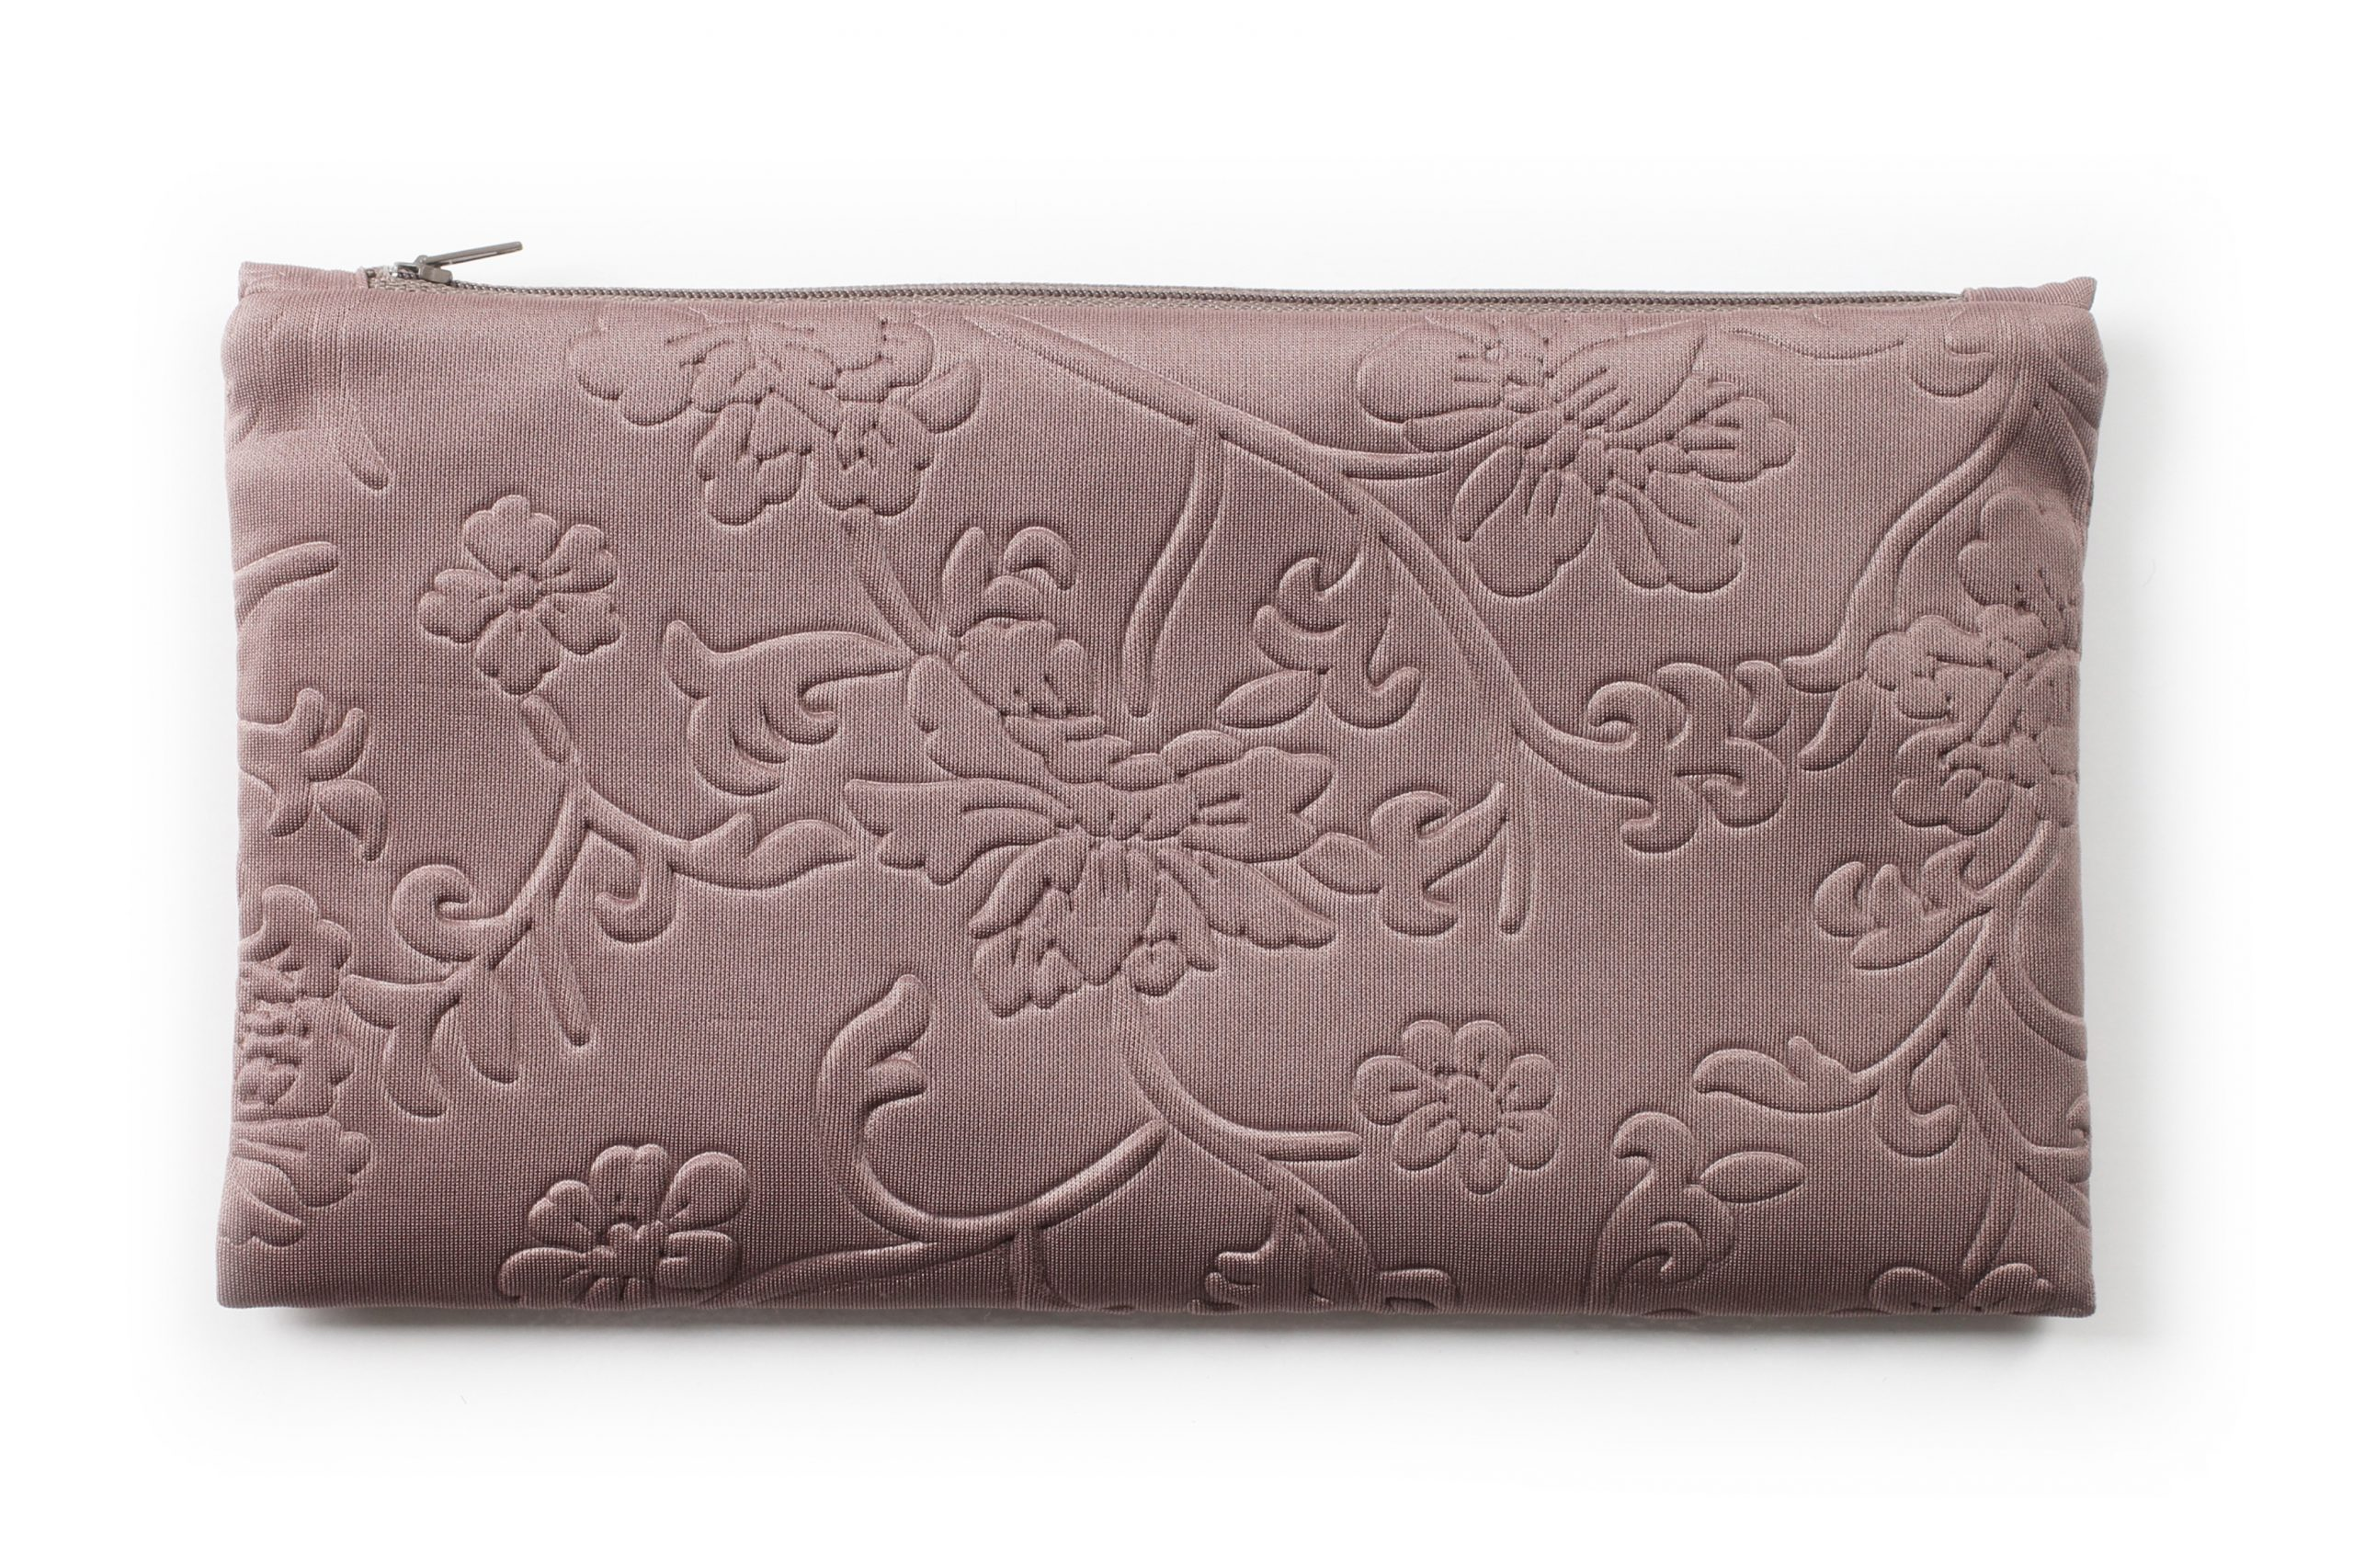 Cacao Flowers Clutch bag - Evening clutch bags online